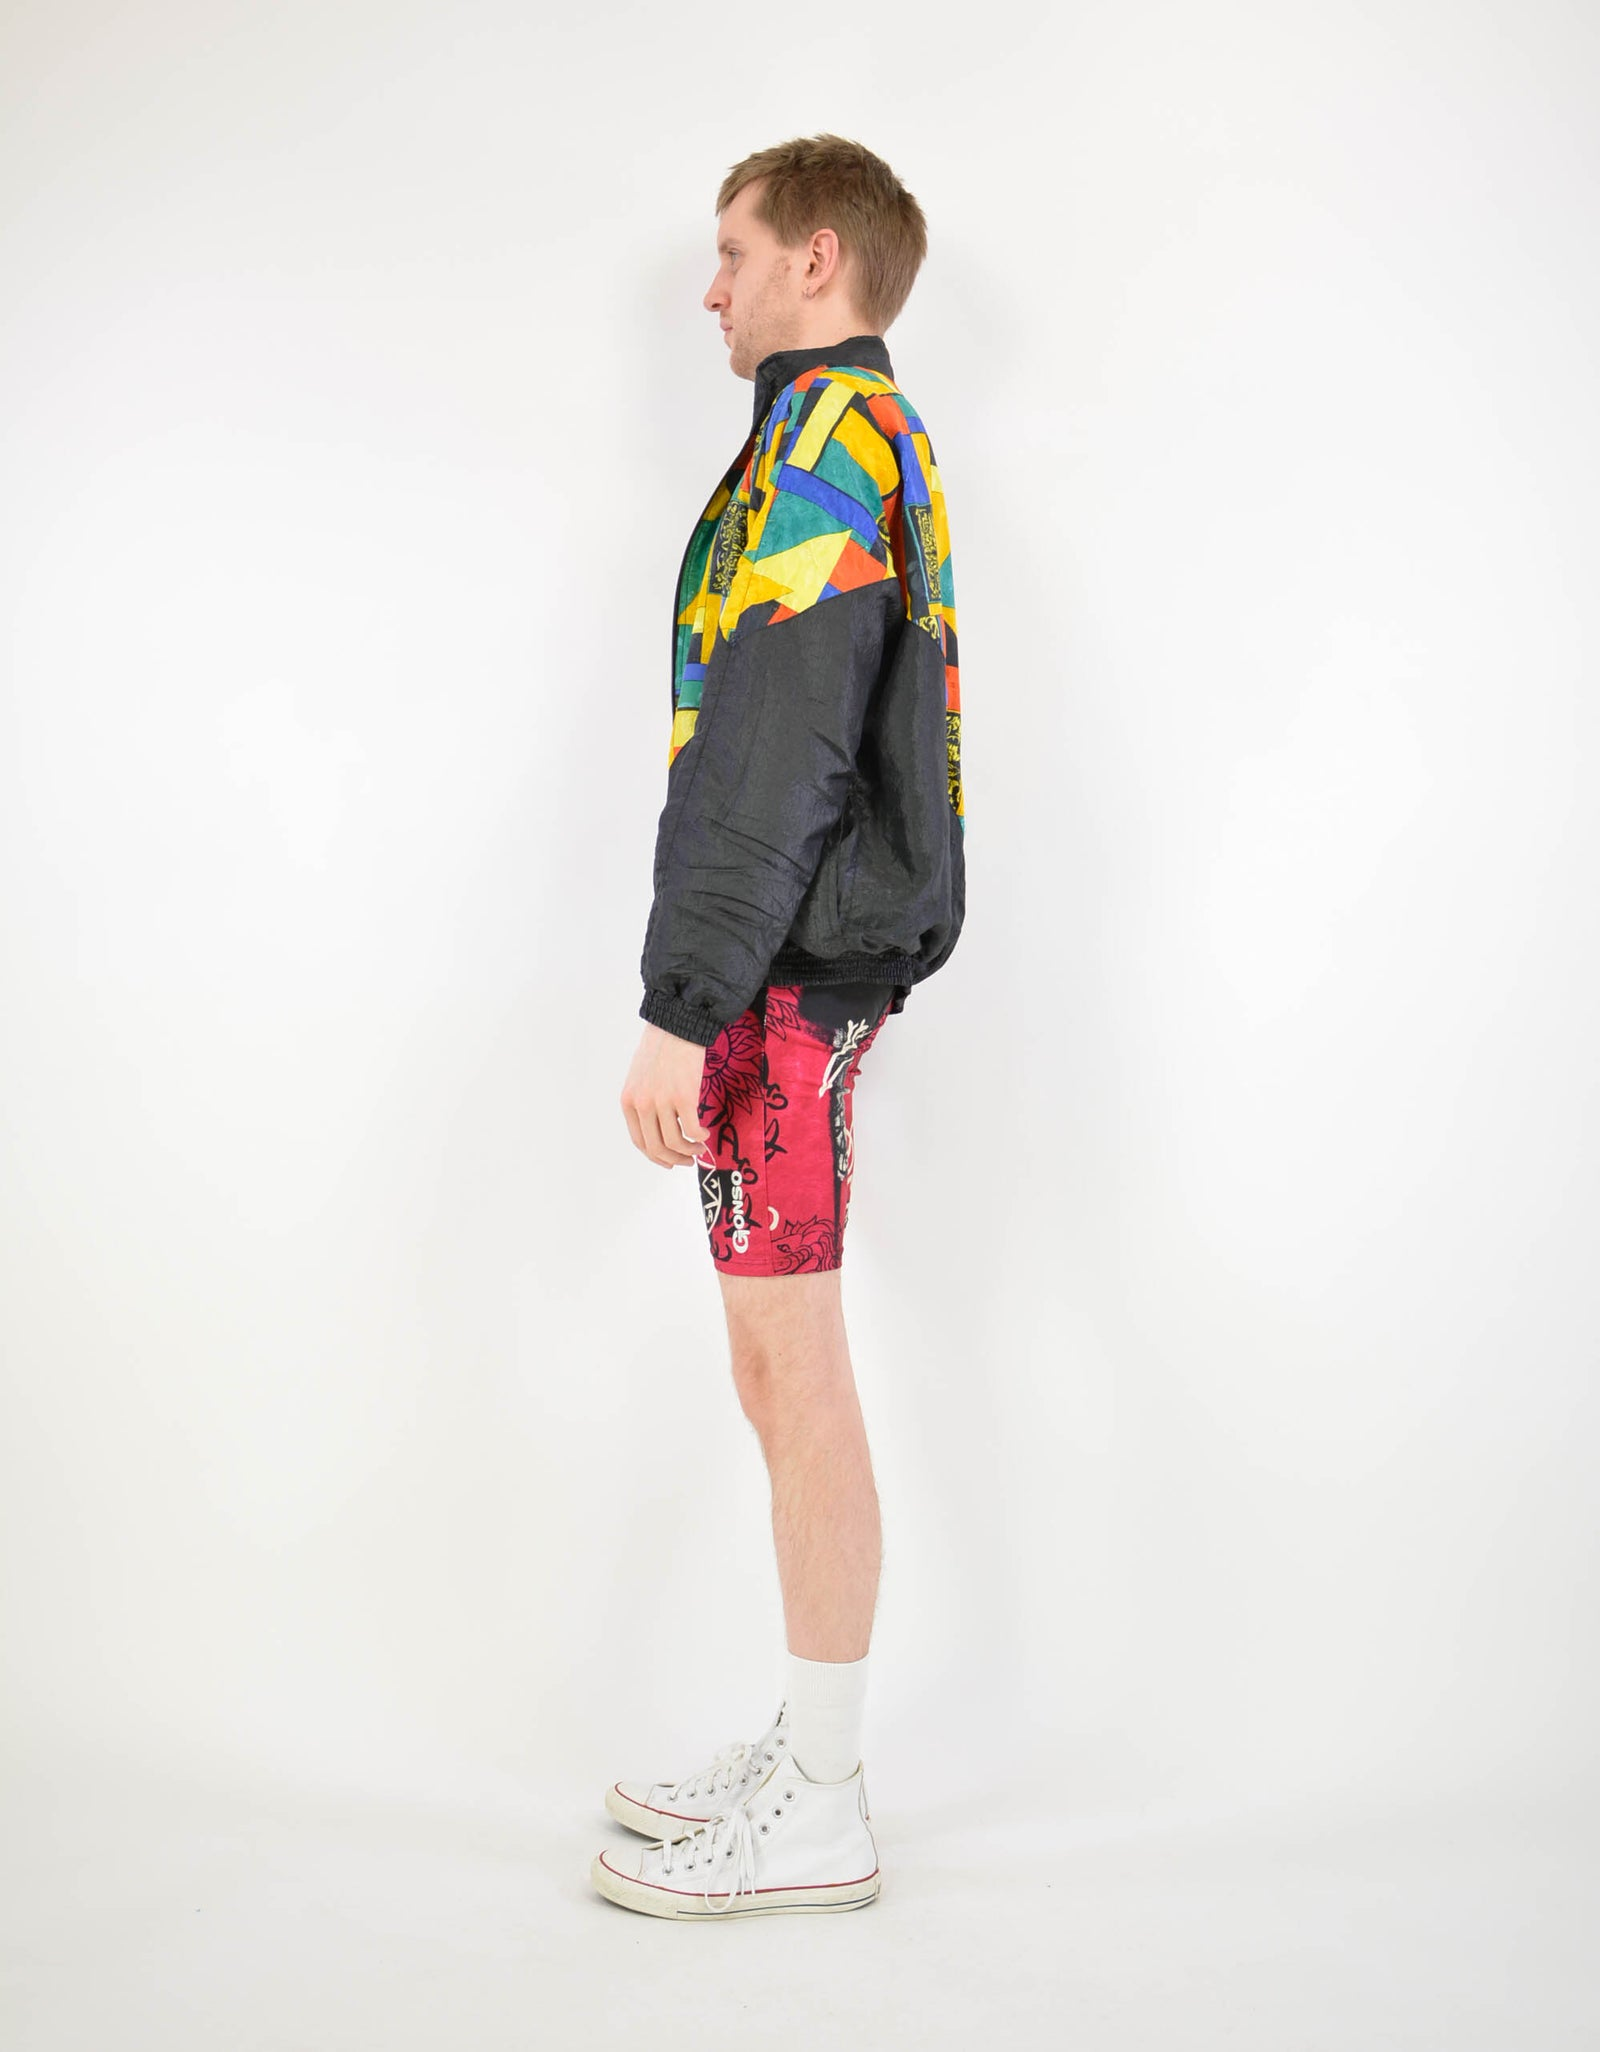 90s aerobic suit - PICKNWEIGHT - VINTAGE KILO STORE